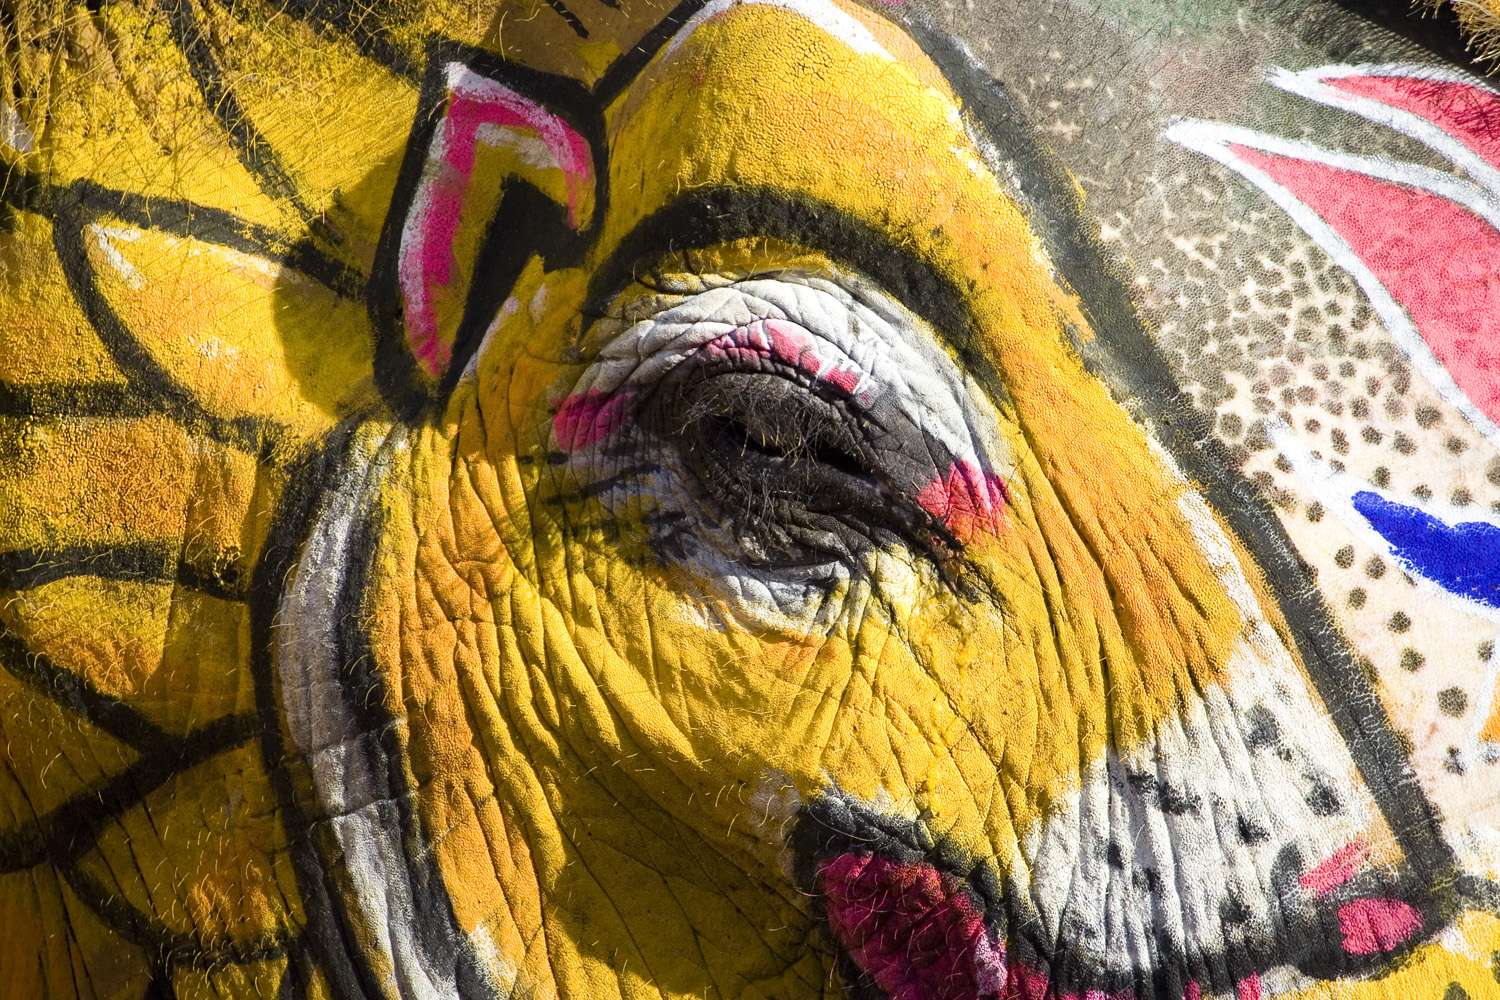 Elephant at Holi Festival (Andy Webb)